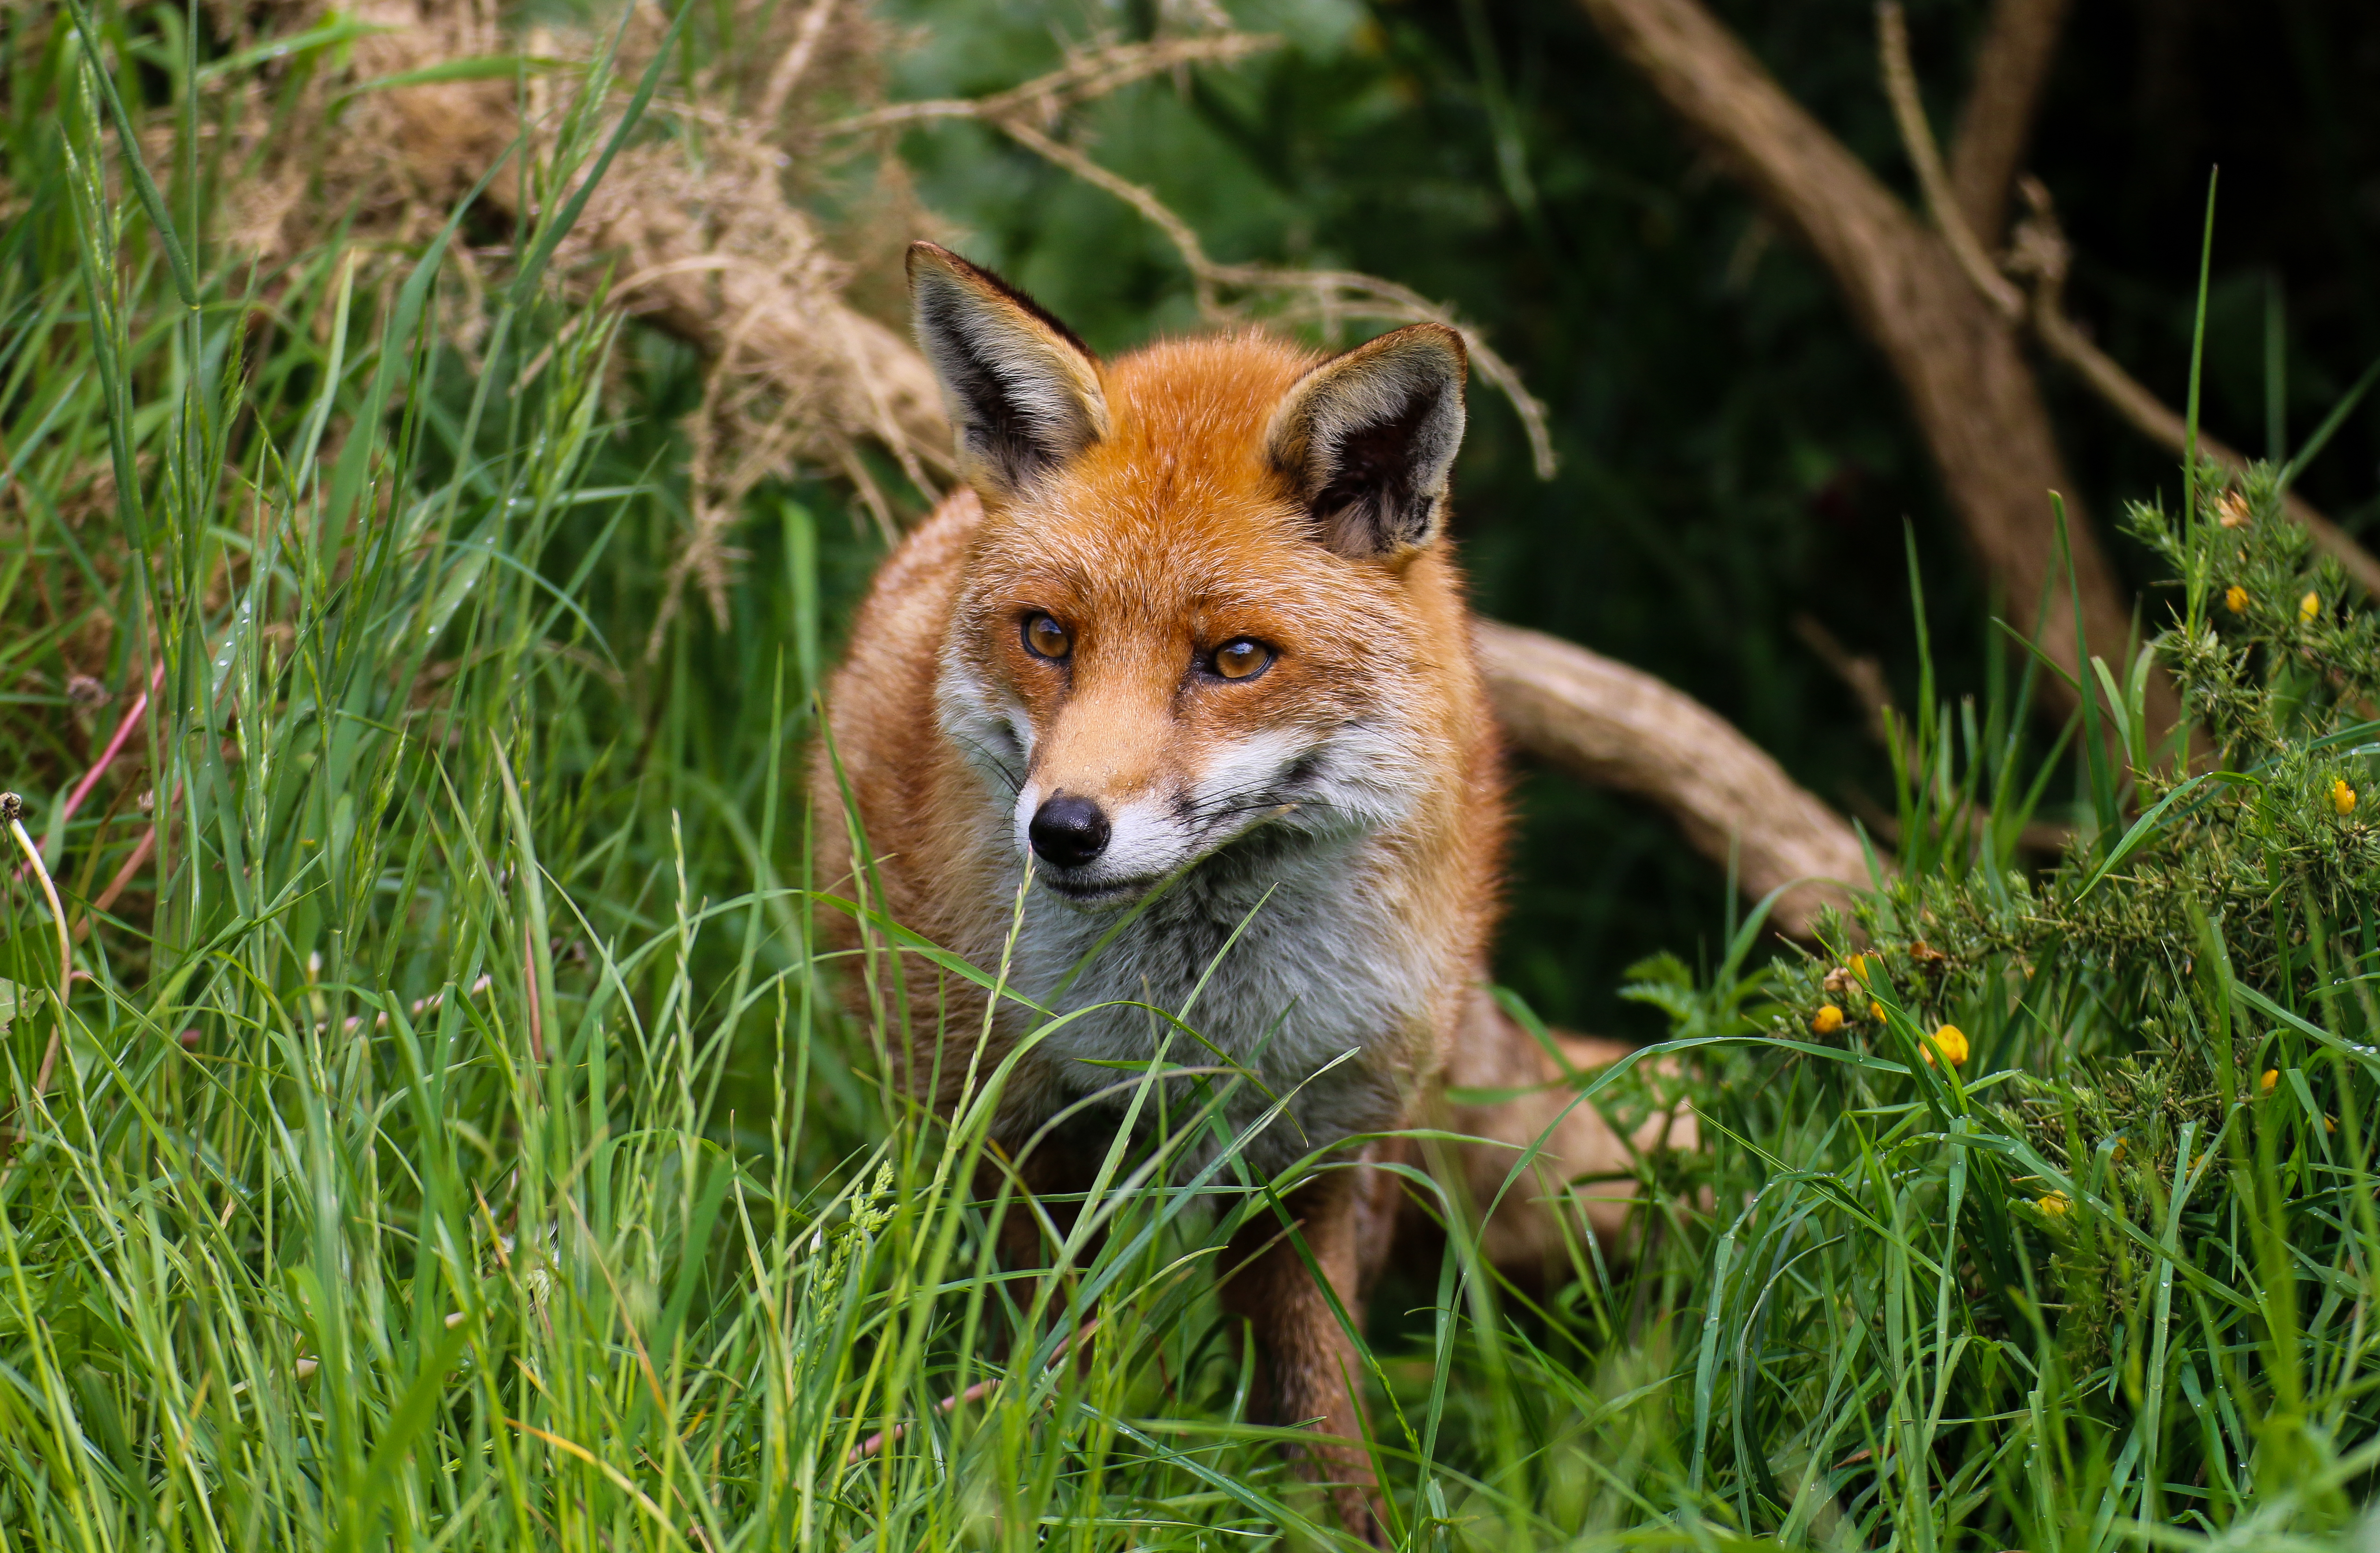 134277 download wallpaper Animals, Fox, Predator, Nice, Sweetheart, Beast screensavers and pictures for free